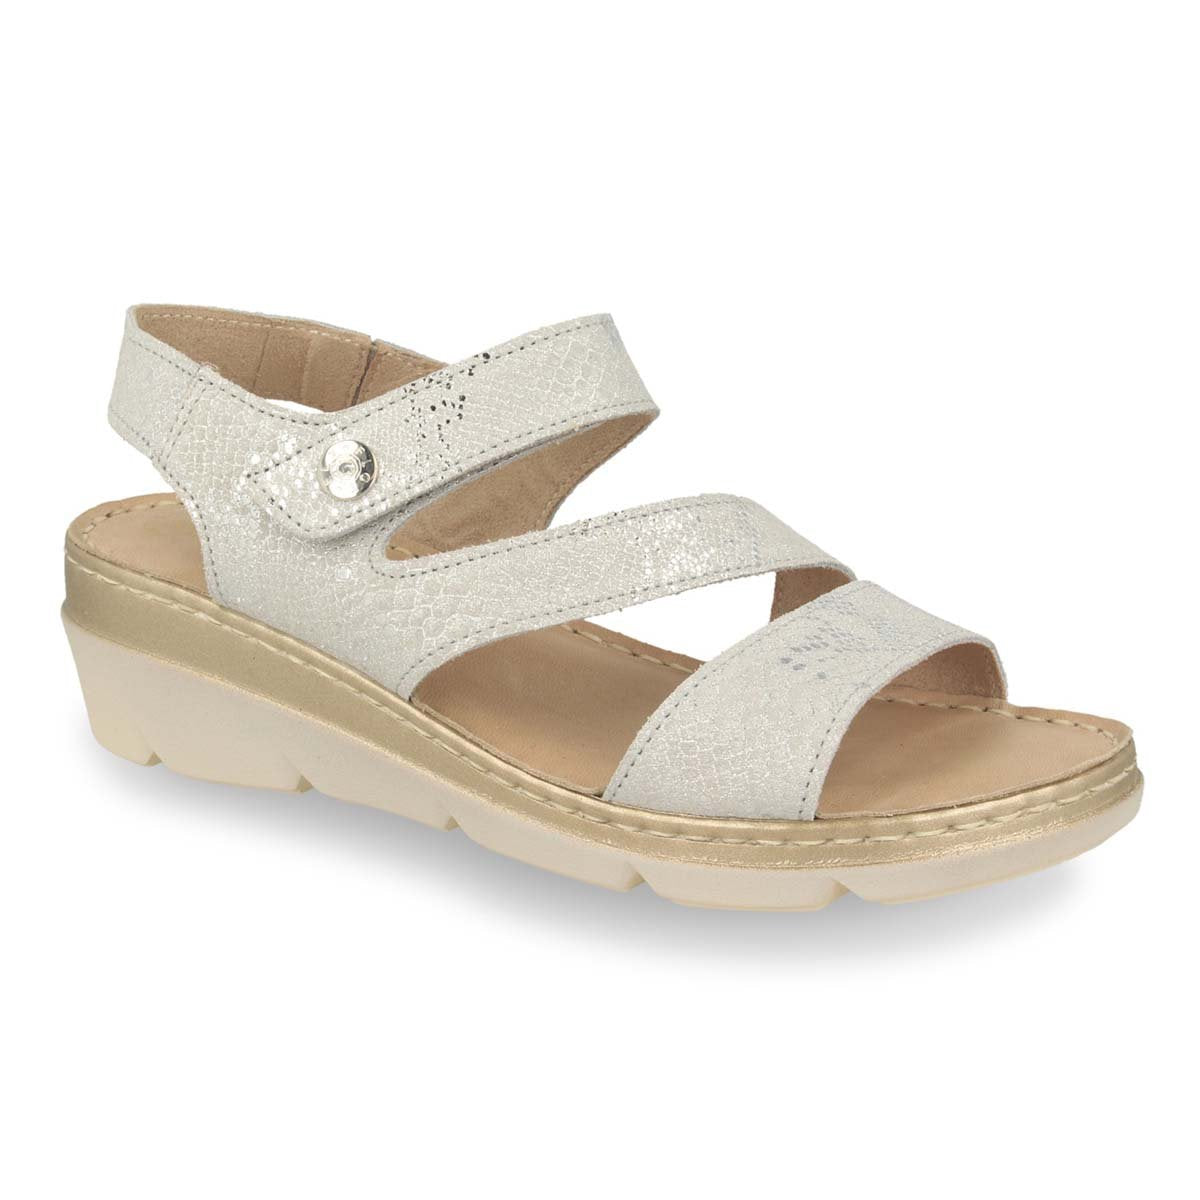 Photo of the Leather Woman Sandal Light Grey  (71f22mg)